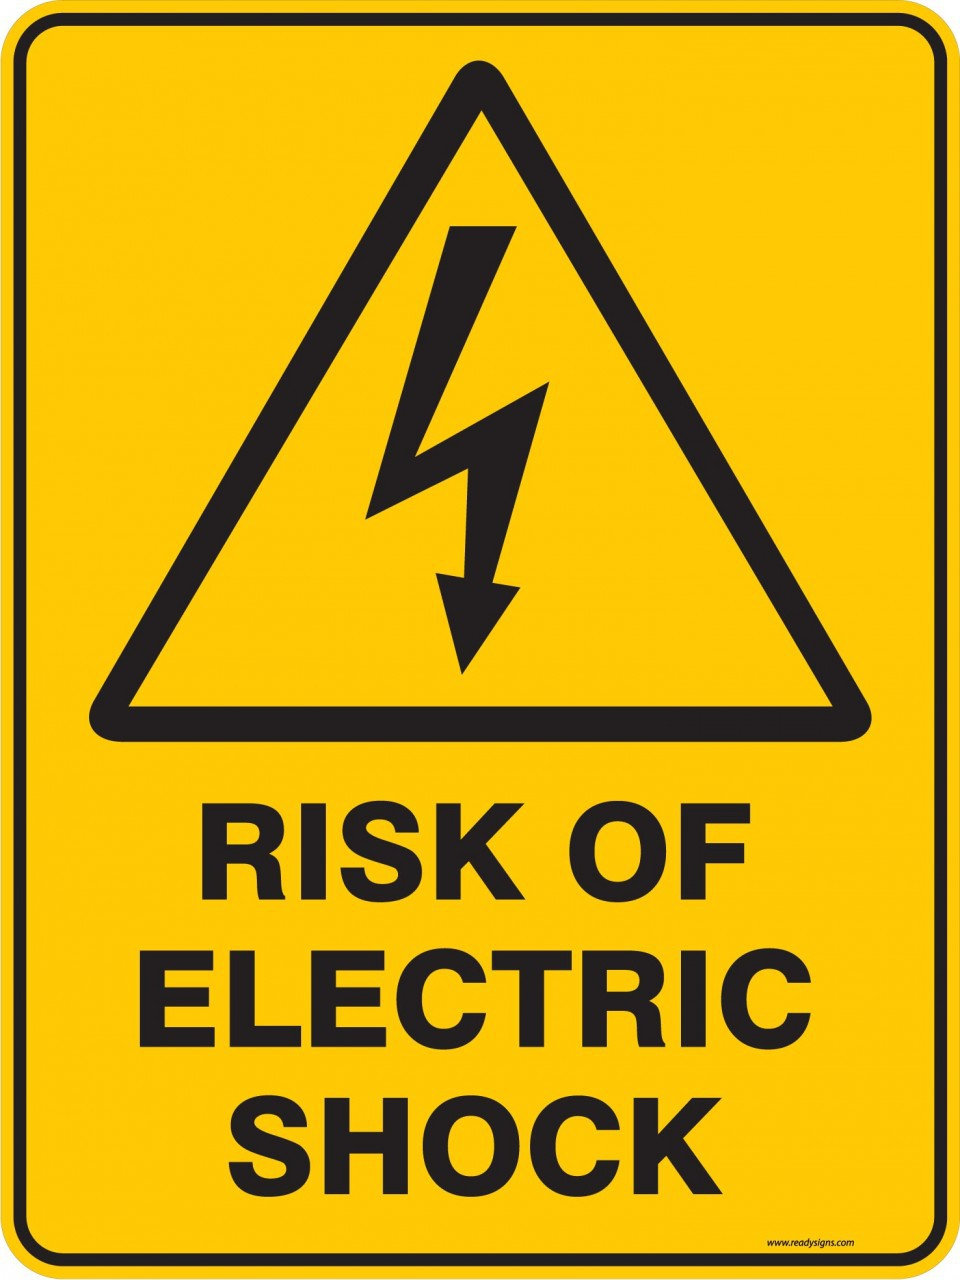 Beware Of Electric Shock Drowning  Aries Inspection Company. Attack On Titan Character Signs. Music Signs. Overthinker Signs Of Stroke. Guest Bedroom Signs Of Stroke. Clubbing Signs. Number 9 Signs. Periods Signs. Pathogenesis Signs